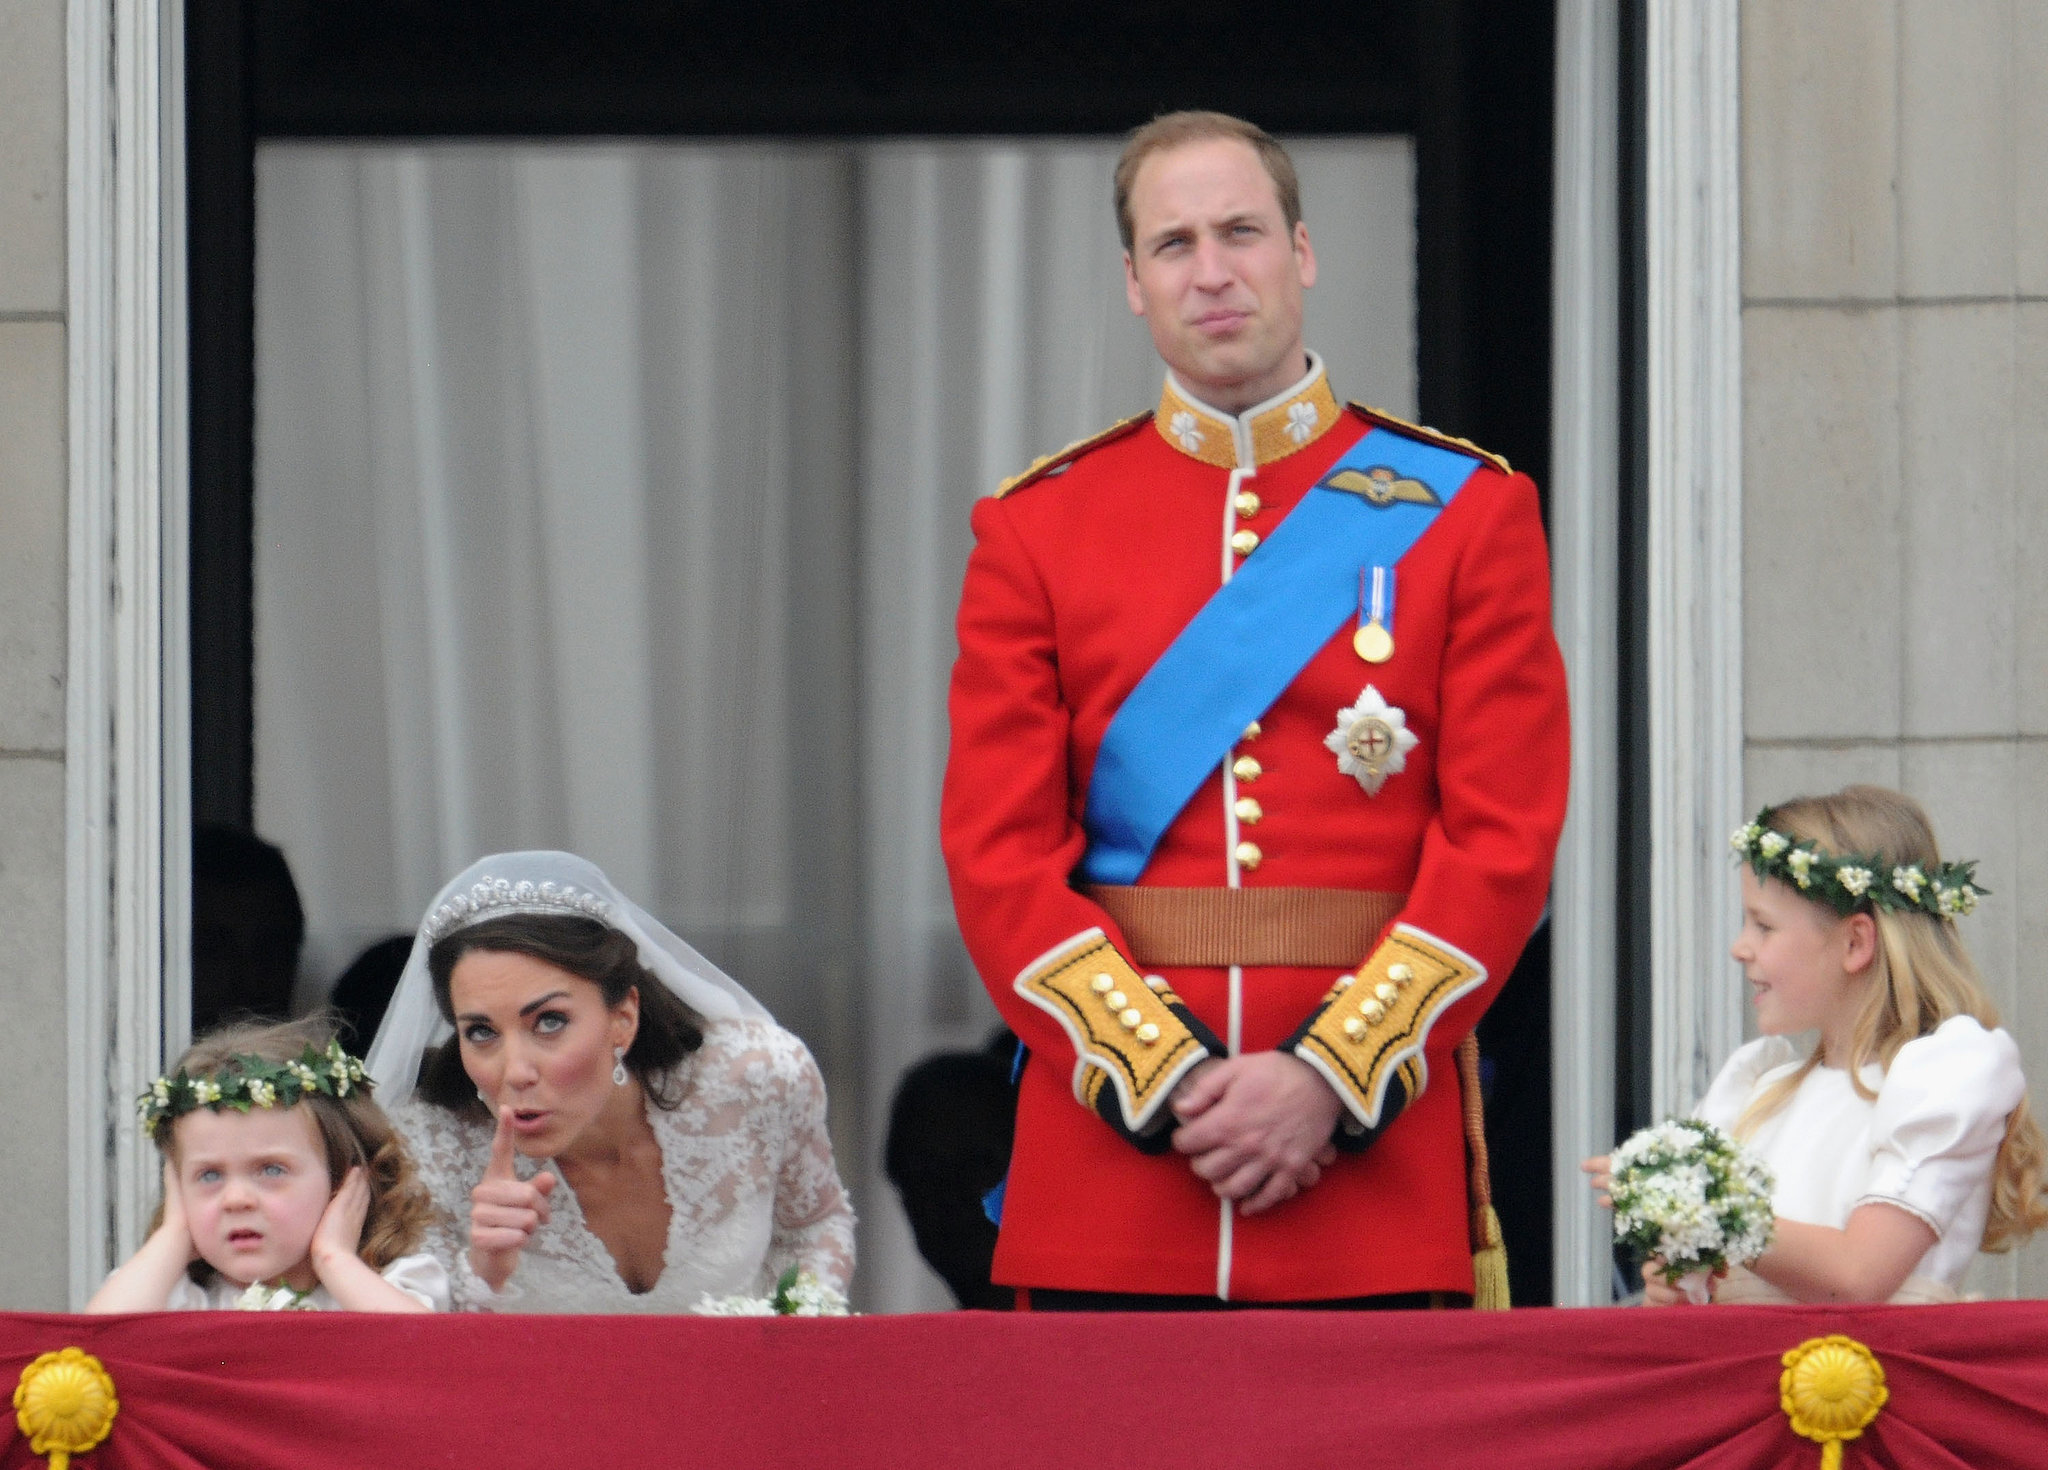 For even more from the Will and Kate's big day, check out all the best royal wedding pictures too!